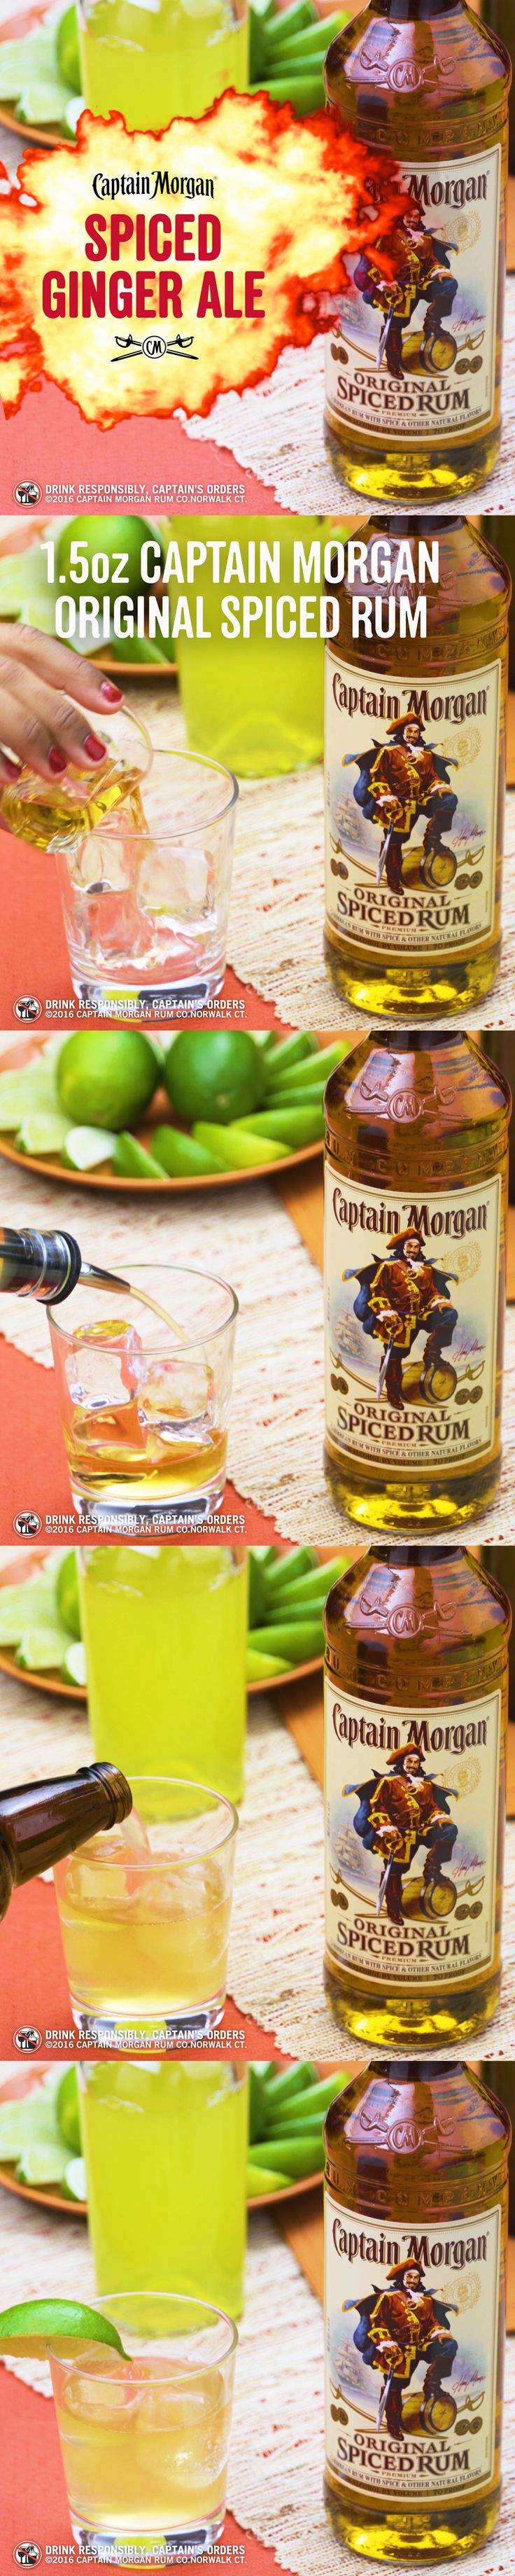 Captain's Spiced Ginger Ale. Best served with falling leaves, open fires and your feet up.  Spiked Ginger Ale Recipe (1 serving): 2 dashes aromatic bitters 1.5 oz Captain Morgan Original Spiced Rum 0.5 oz sour mix 1.5 ginger ale 1 lime wedge Get more rum recipes at https://us.captainmorgan.com/rum-cocktails/?utm_source=pinterest&utm_medium=social&utm_term=holidays&utm_content=spiced_ginger_ale&utm_campaign=recipe